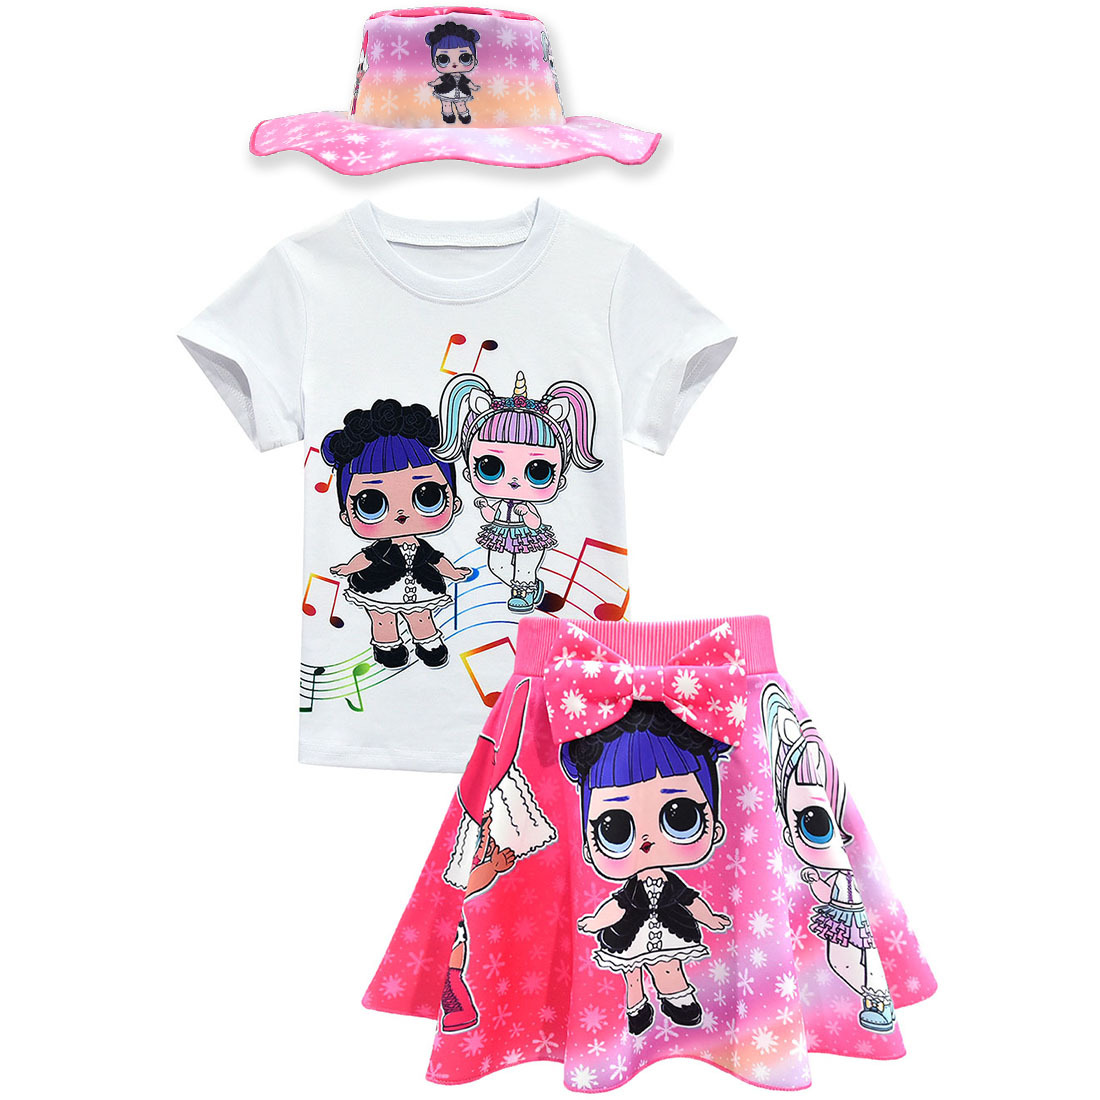 New lol surprise dolls Game Girls Dresses T-Shirts skirts Tops Costume party